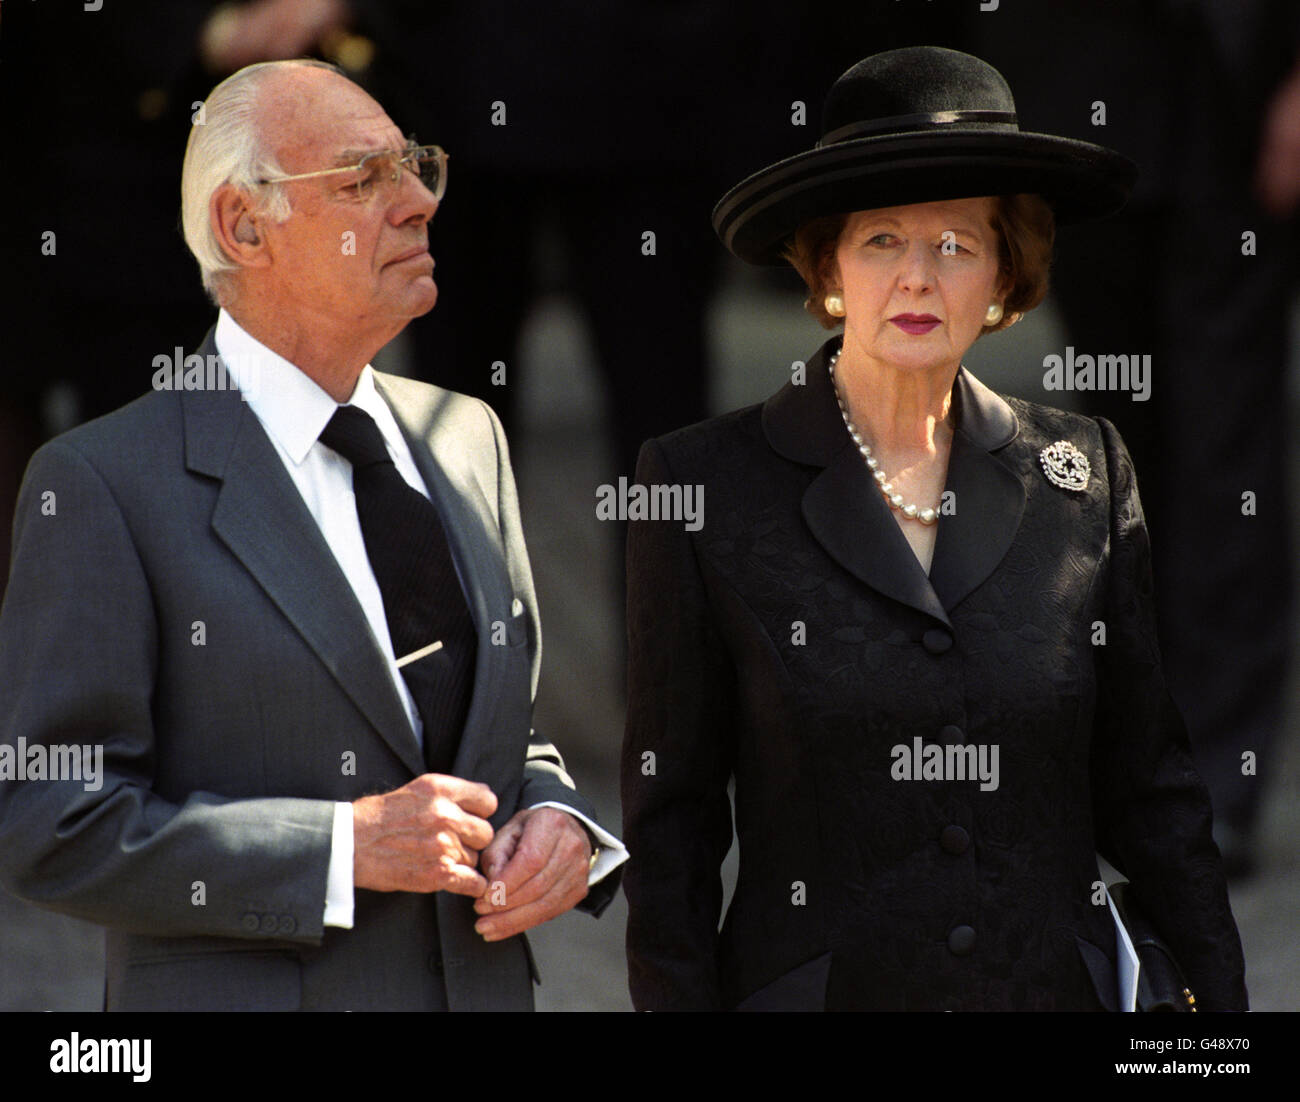 Princess Diana Funeral Westminster Abbey London 1997 Stock Photo Alamy